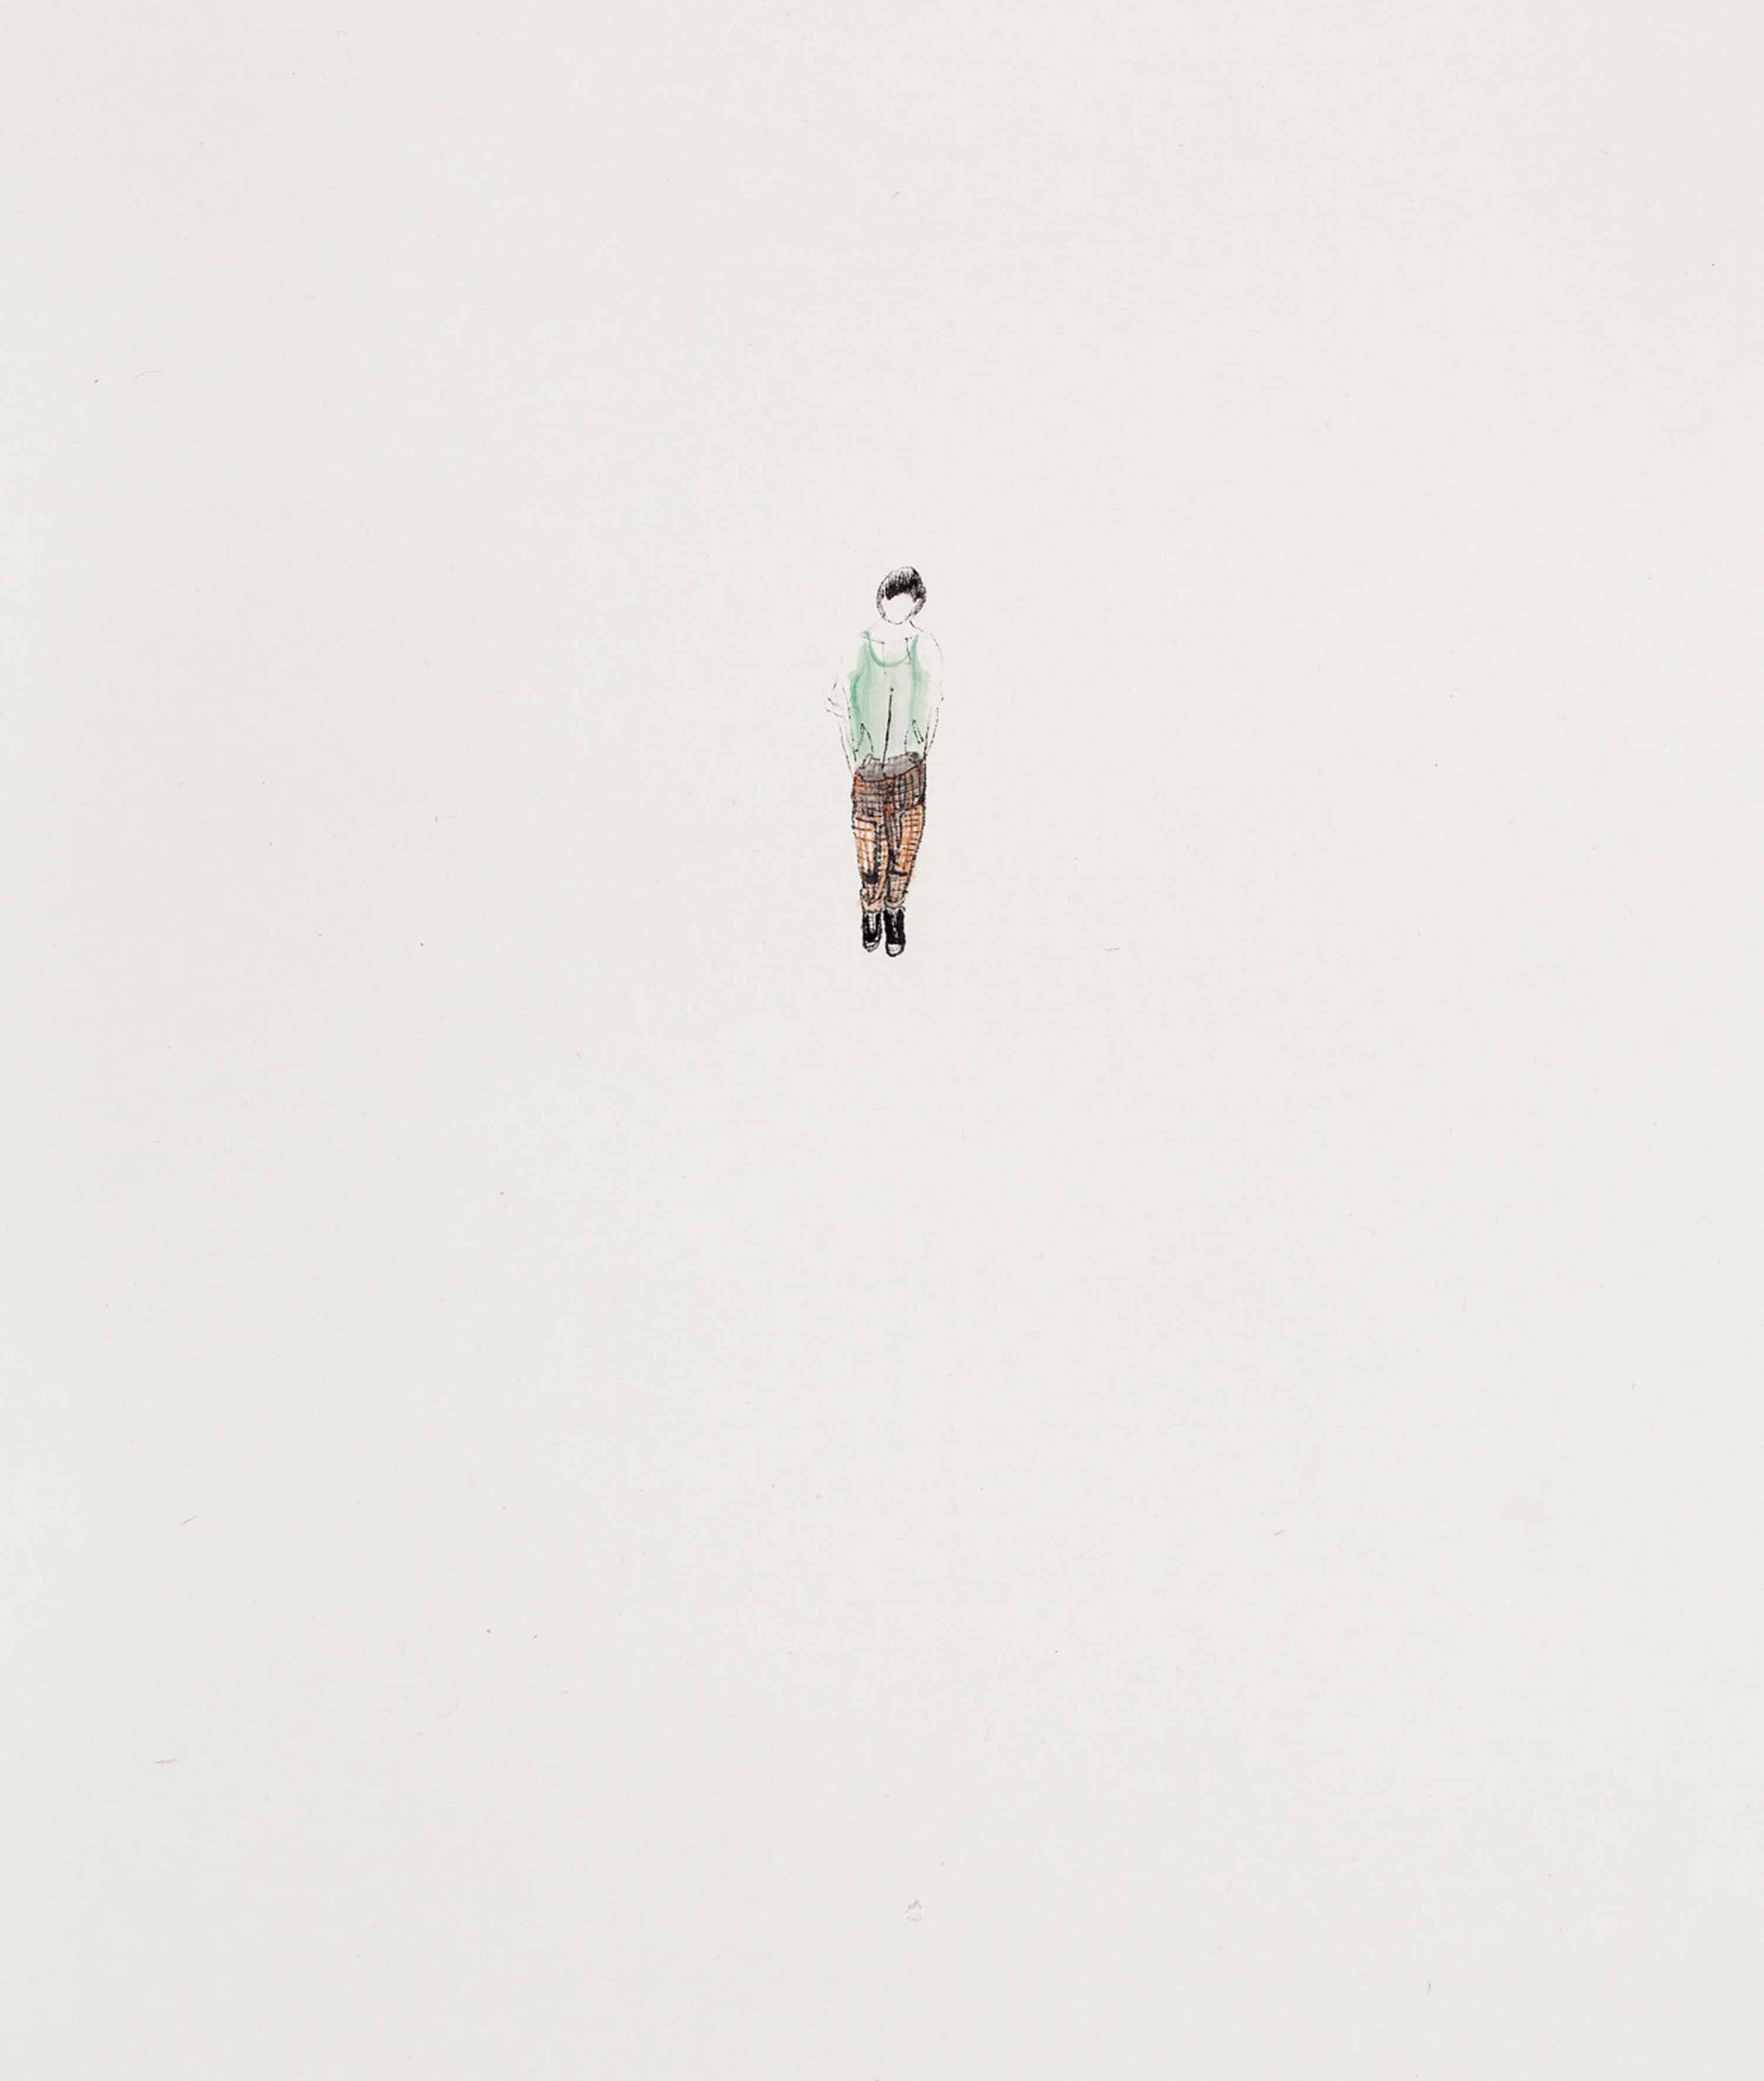 Gao Ping, Girl, 2011, ink on paper, 45 x 36 cm